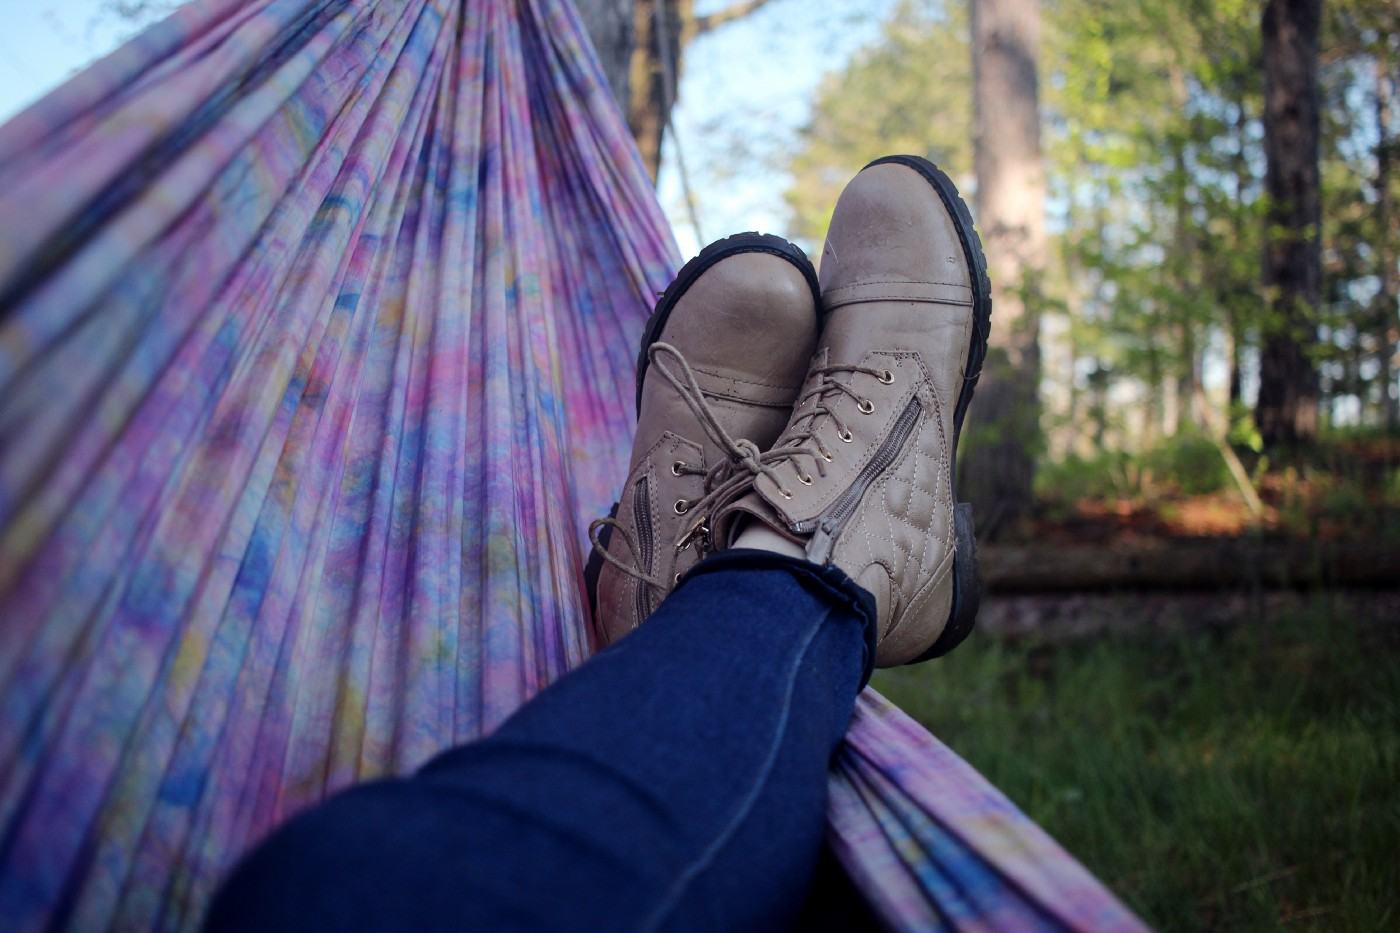 Picture of a person relaxing on an outdoor hammock with their feet crossed.